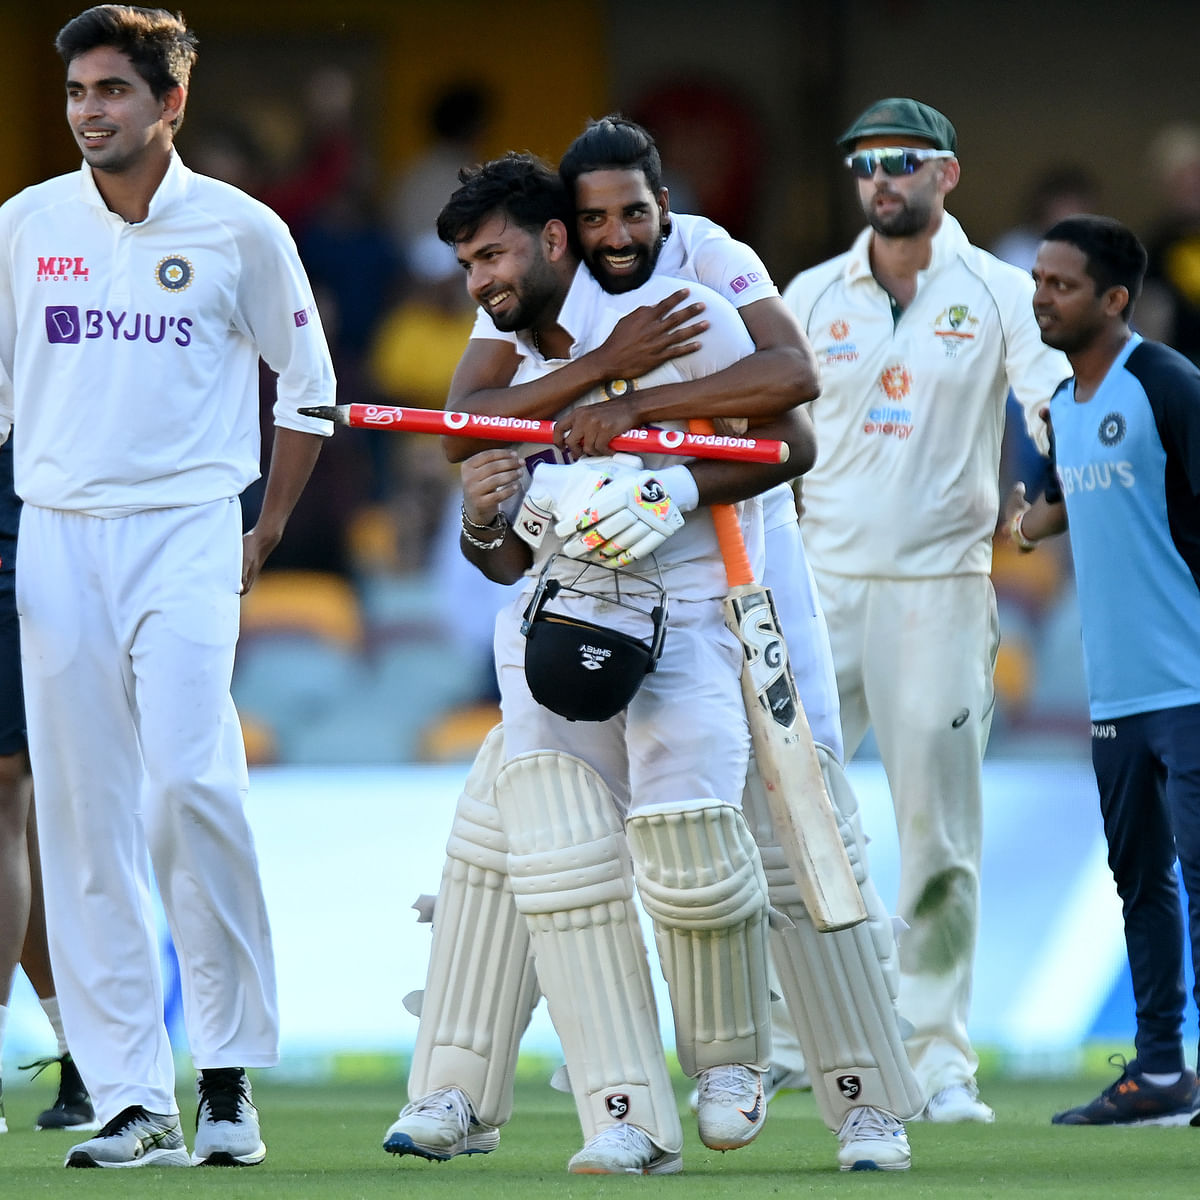 India retains Border-Gavaskar trophy with historic 2-1 win against Australia in Test series